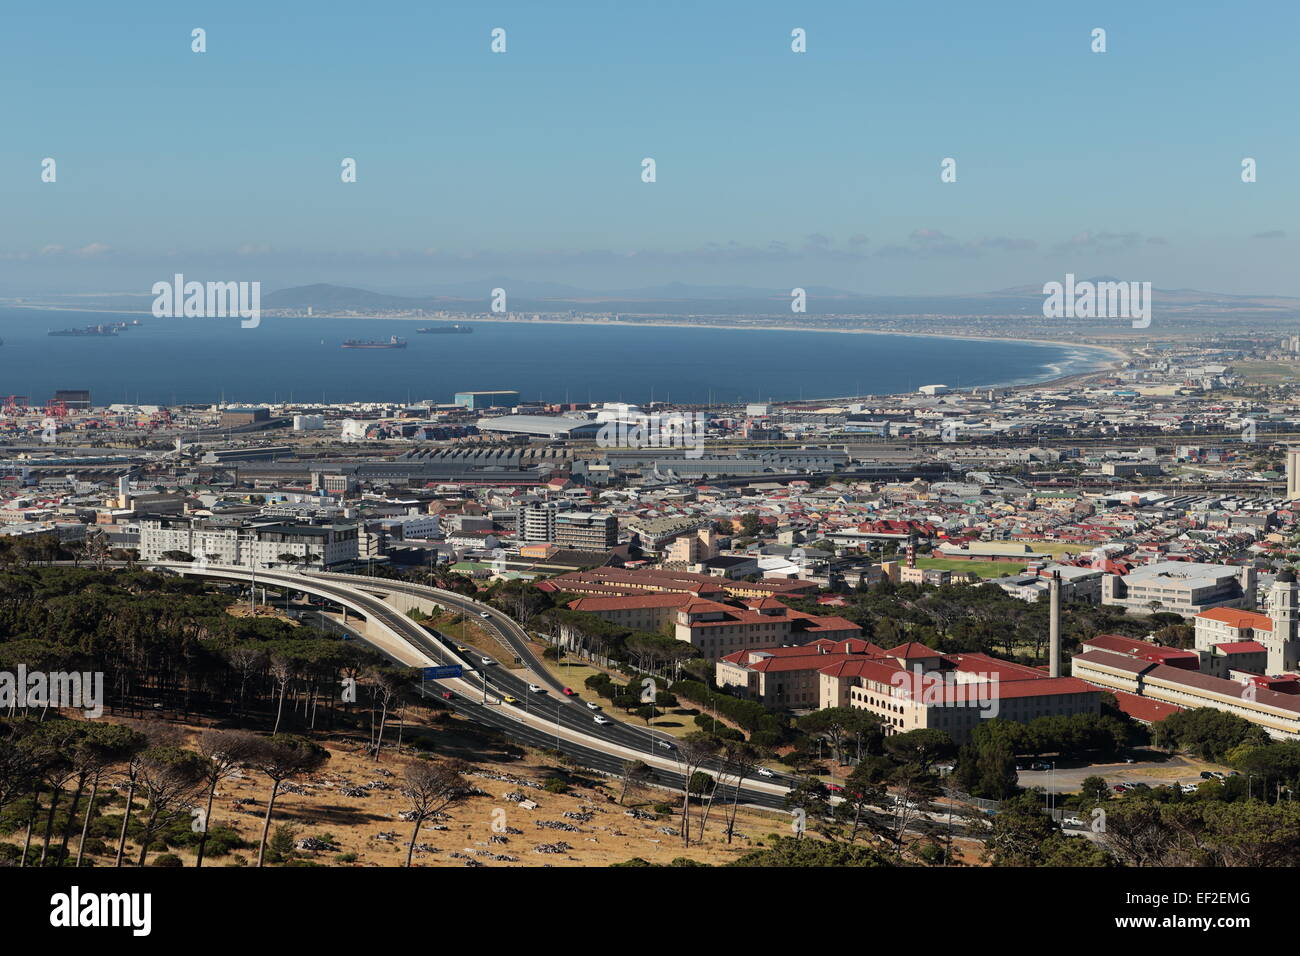 Aerial view of Groote Schuur hospital, the N2 highway and Table Bay, viewed from the slopes of Devil's Peak, - Stock Image